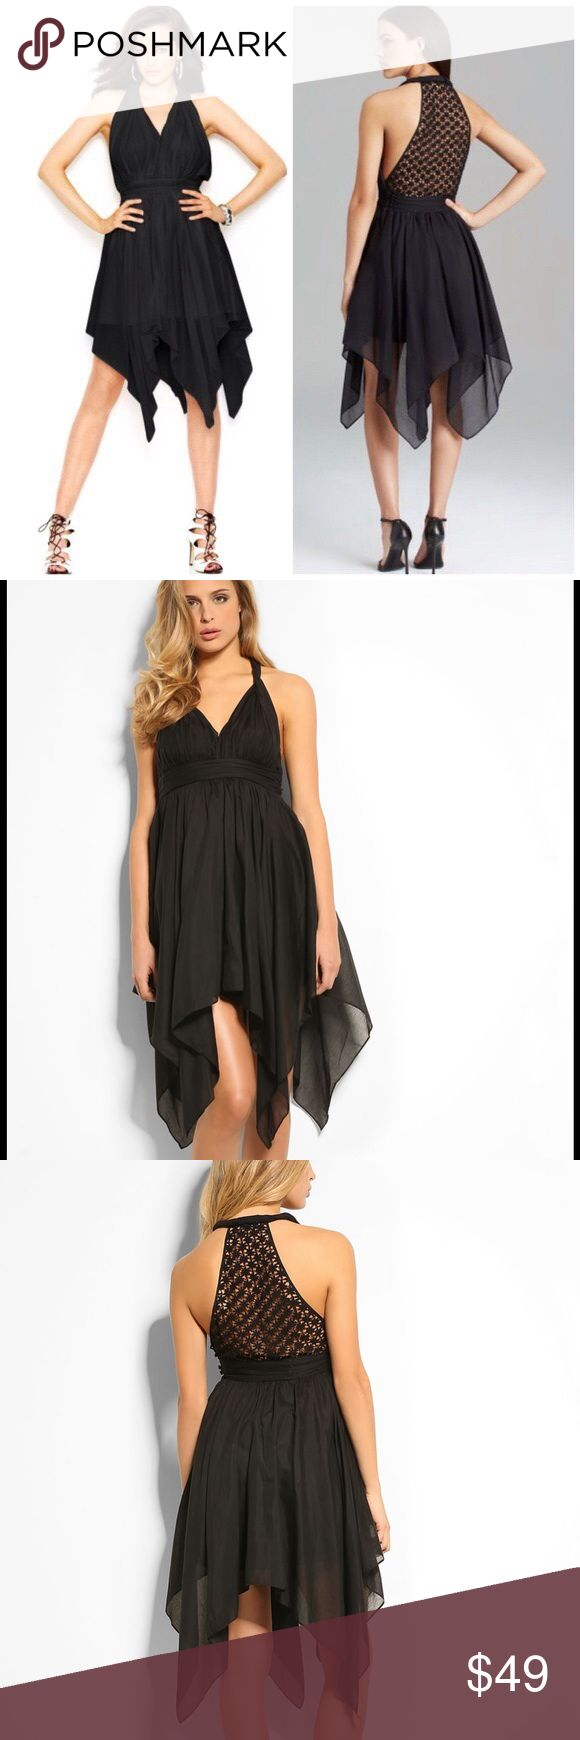 "🆕 Guess Twisted Tank Dress Crafted with a sweetheart neckline, an open embroidered racerback and a sharkbite hemline, wear this flowy dress with strappy heels and an updo for a romantic finish.  Sweetheart neckline  Sleeveless  Twisted tank straps  Sharkbite hemline  Open embroidered racerback  Zip and button side closure  Pleated belt at waist  Empire silhouette  Skirt lined  Cotton/silk. Hand wash.  Underarm across 14"". Length 31-42"".  Brand new with tag. Retail price $108.  Smoke free…"